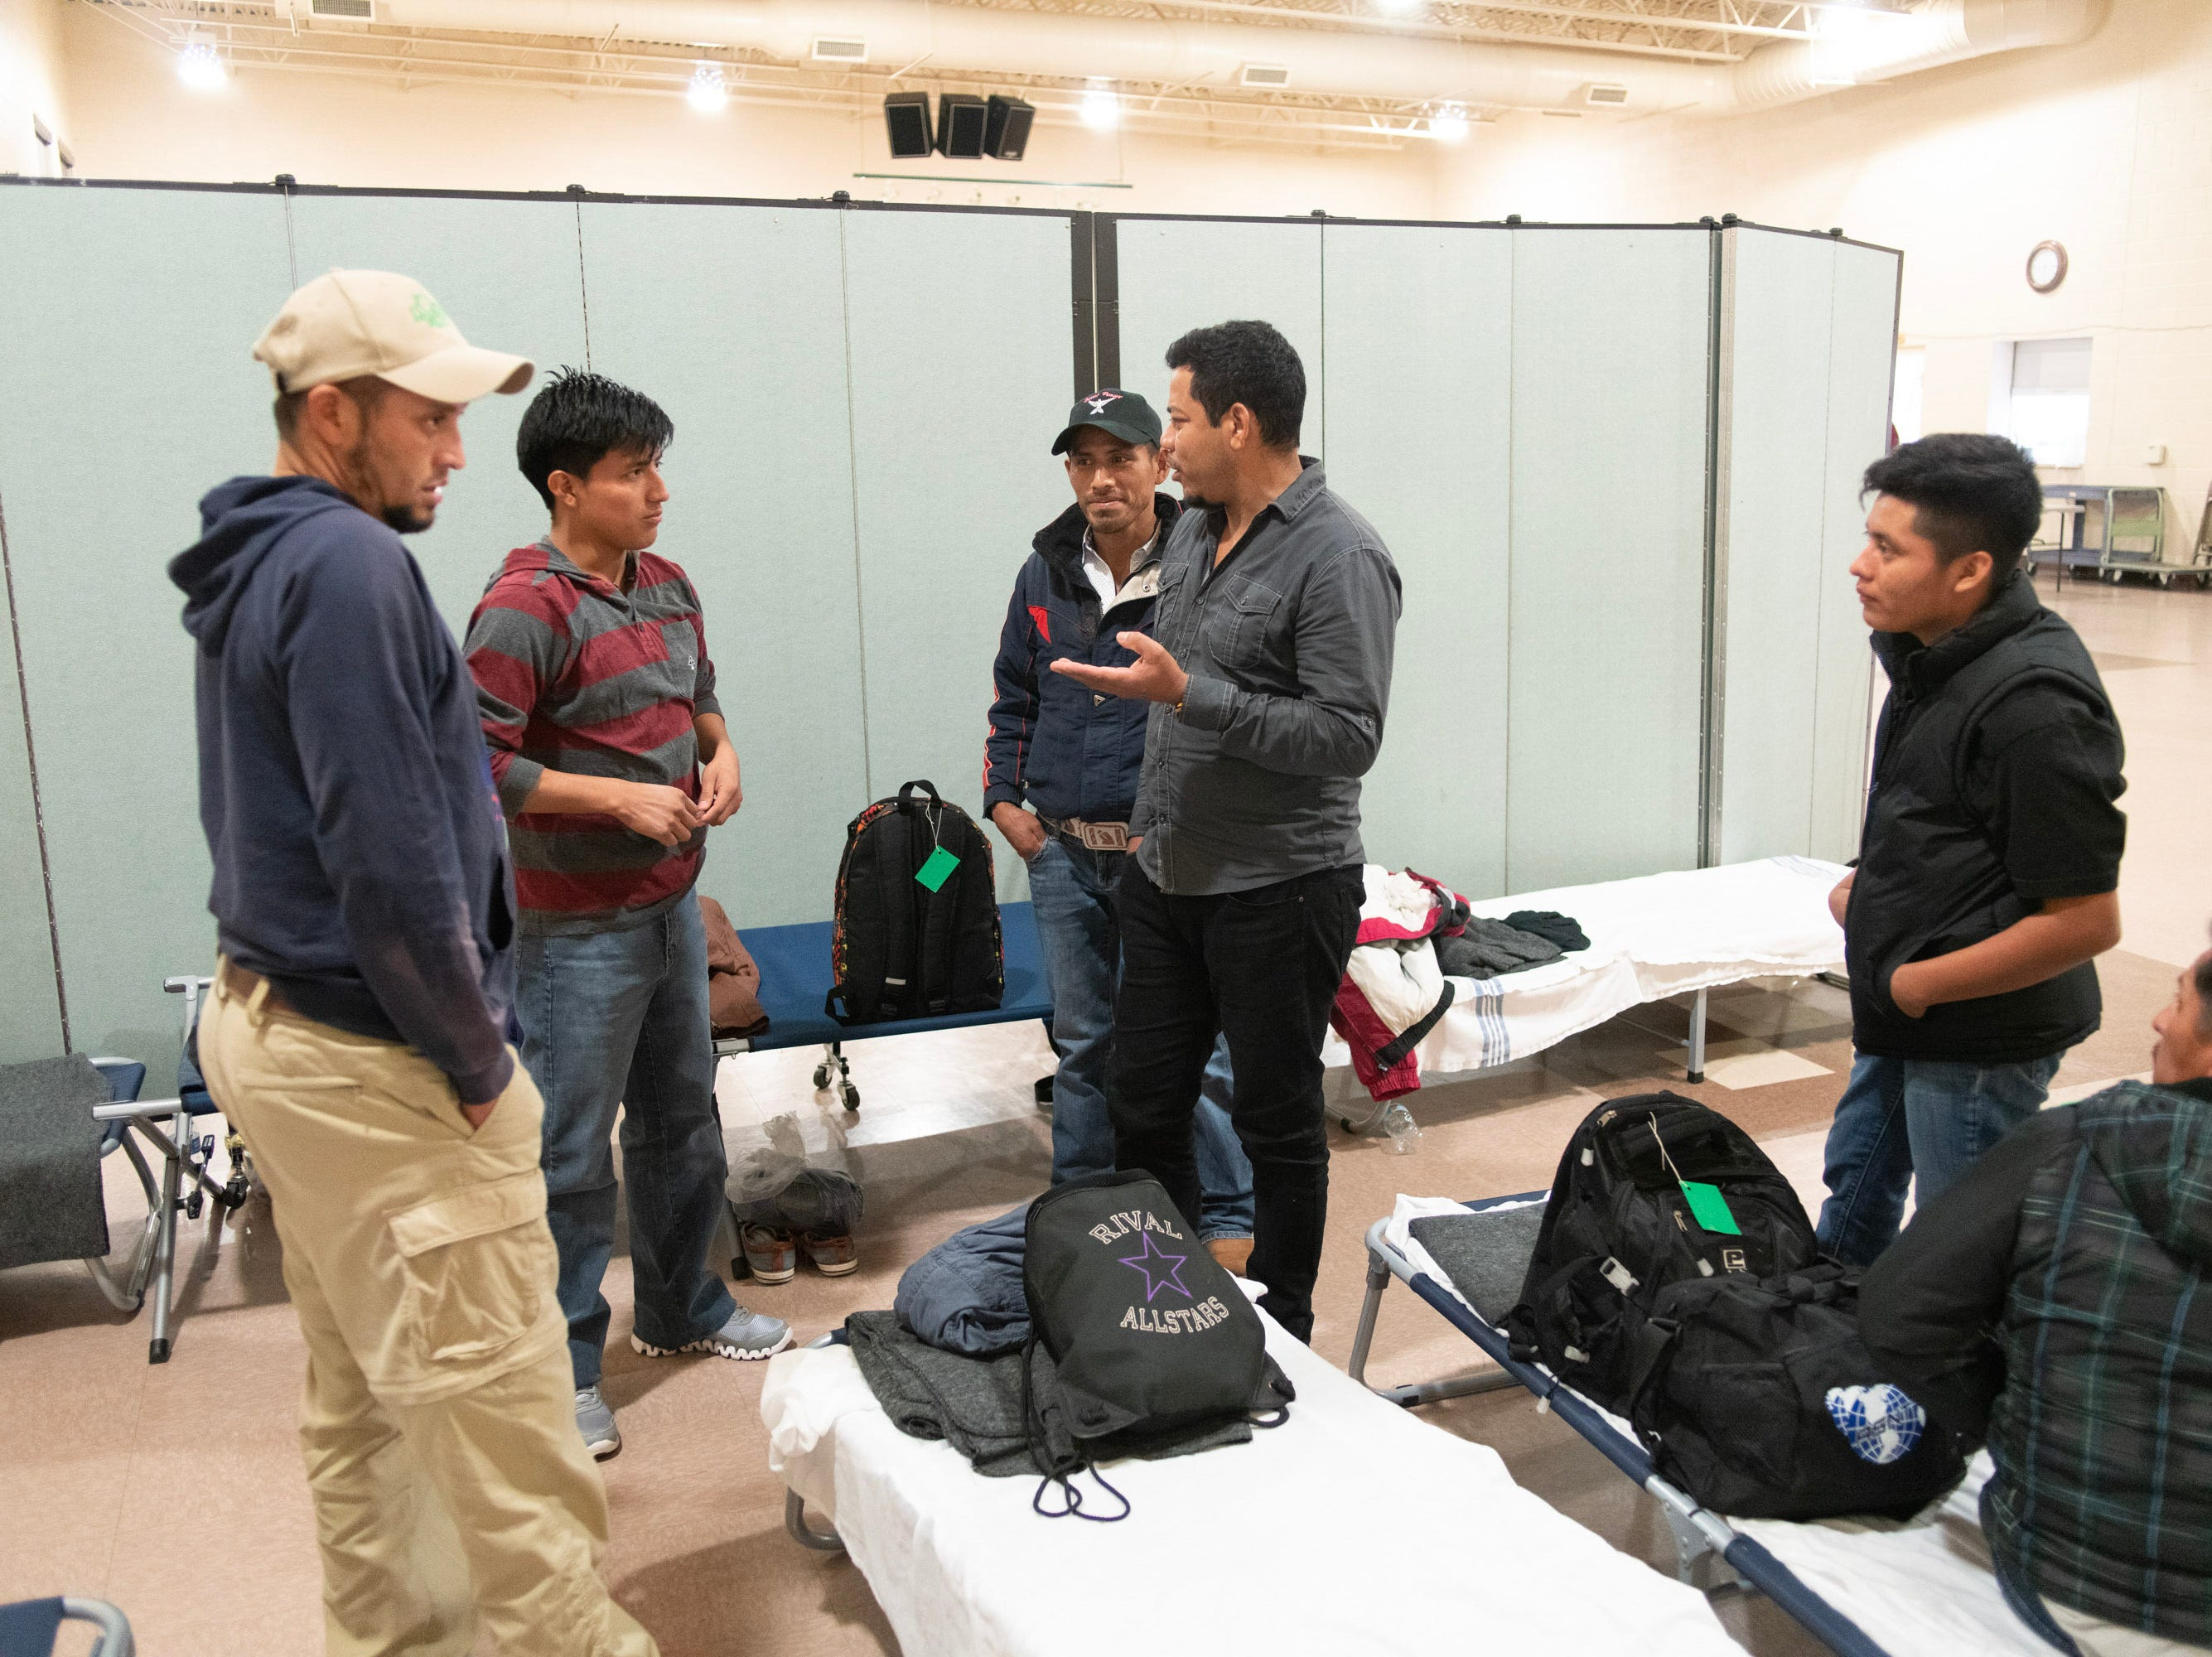 Men gather on the men's side of a migrant shelter in Doña Ana County to chat about their journeys and their destinations.